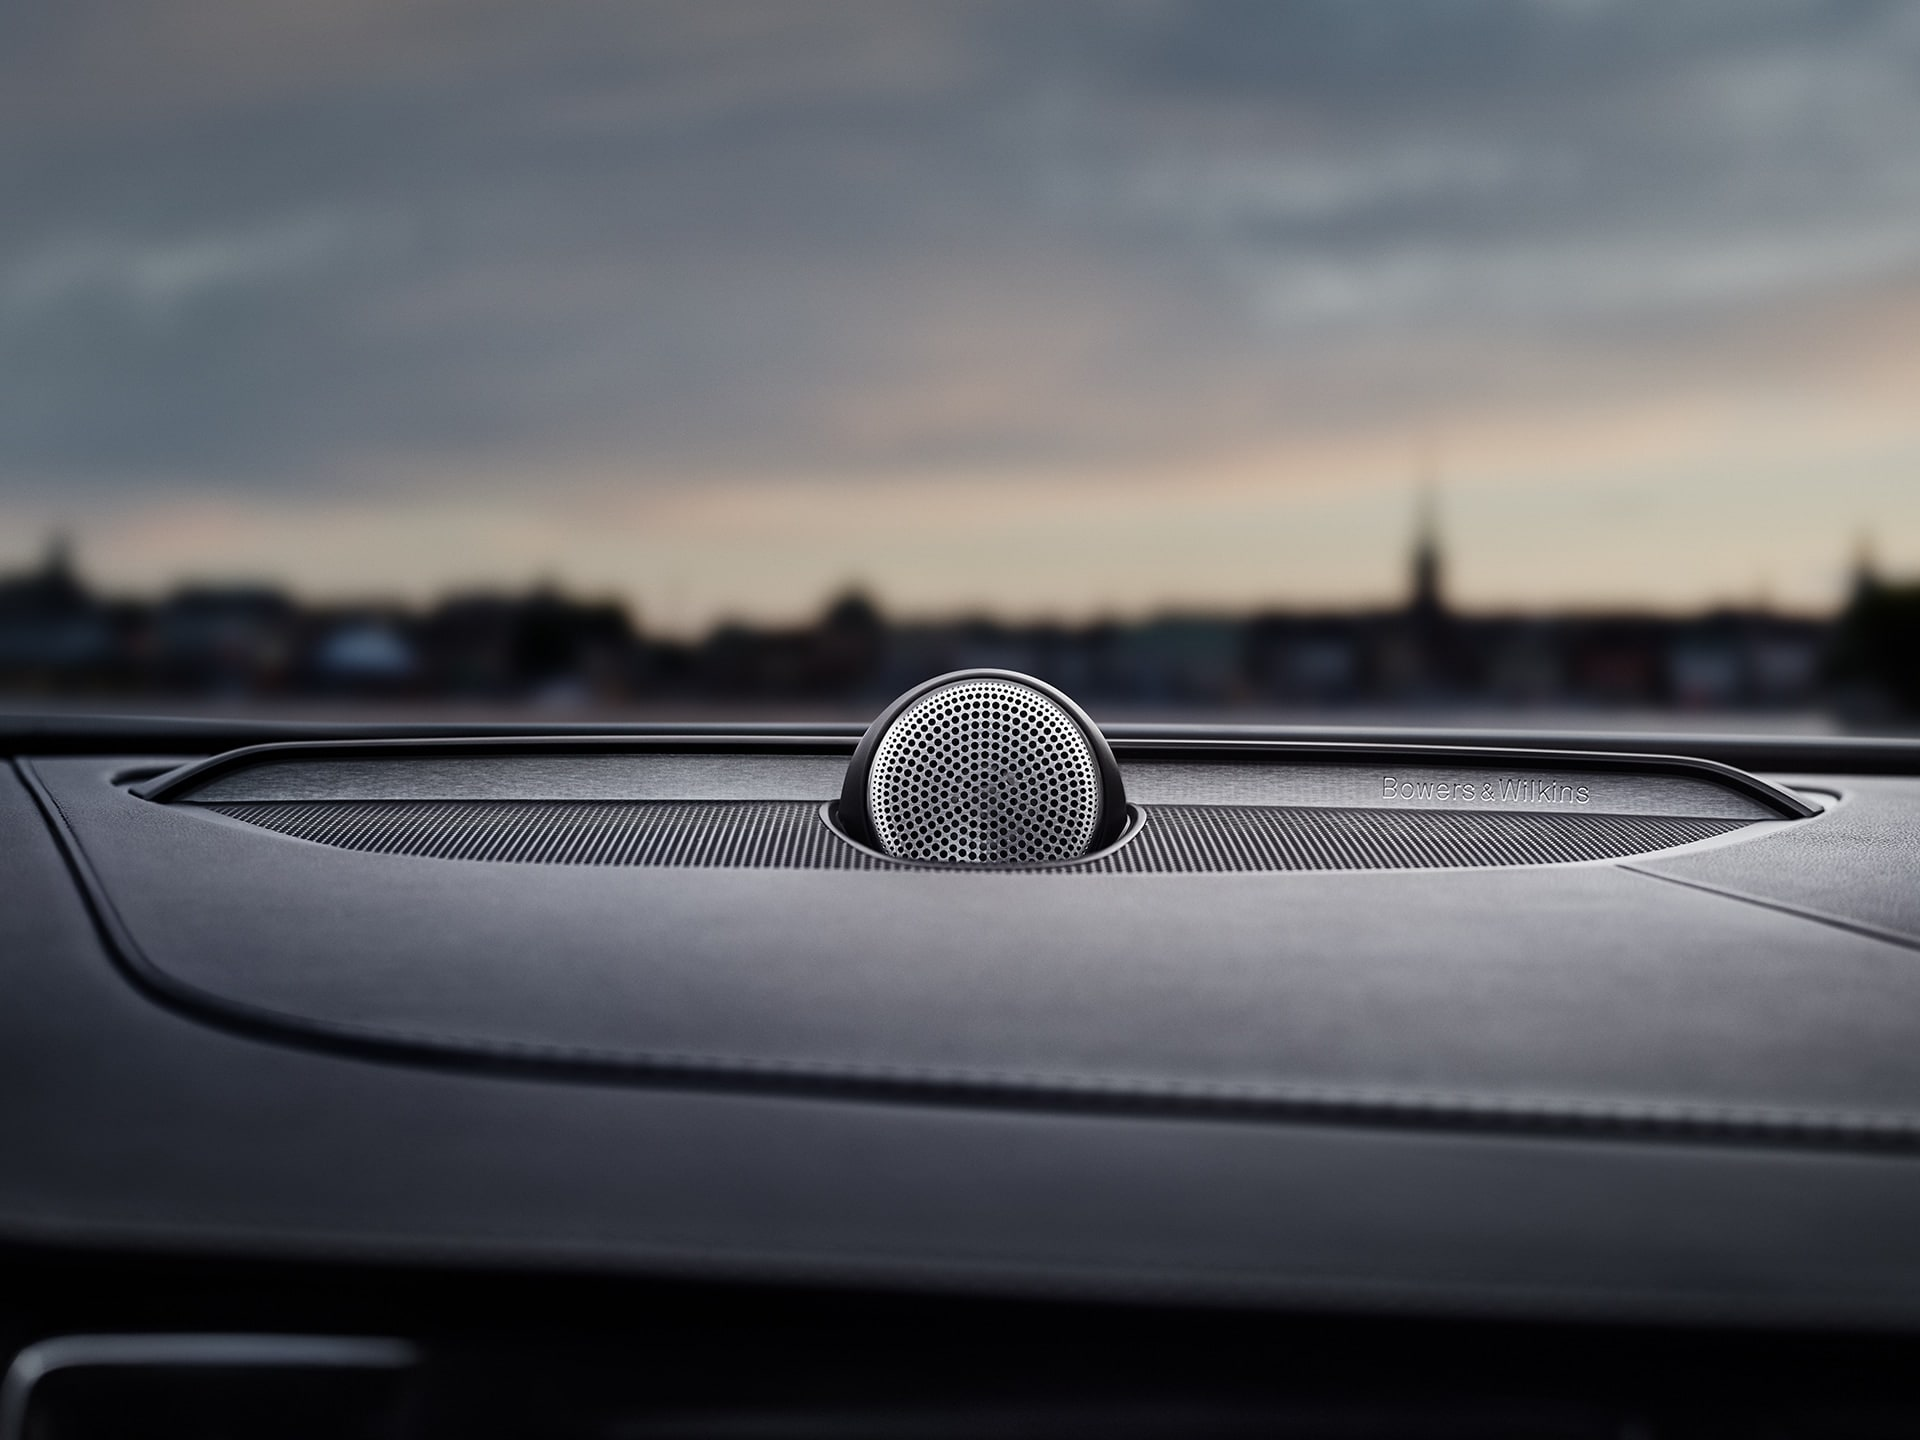 Bowers & Wilkins speakers inside a Volvo XC90